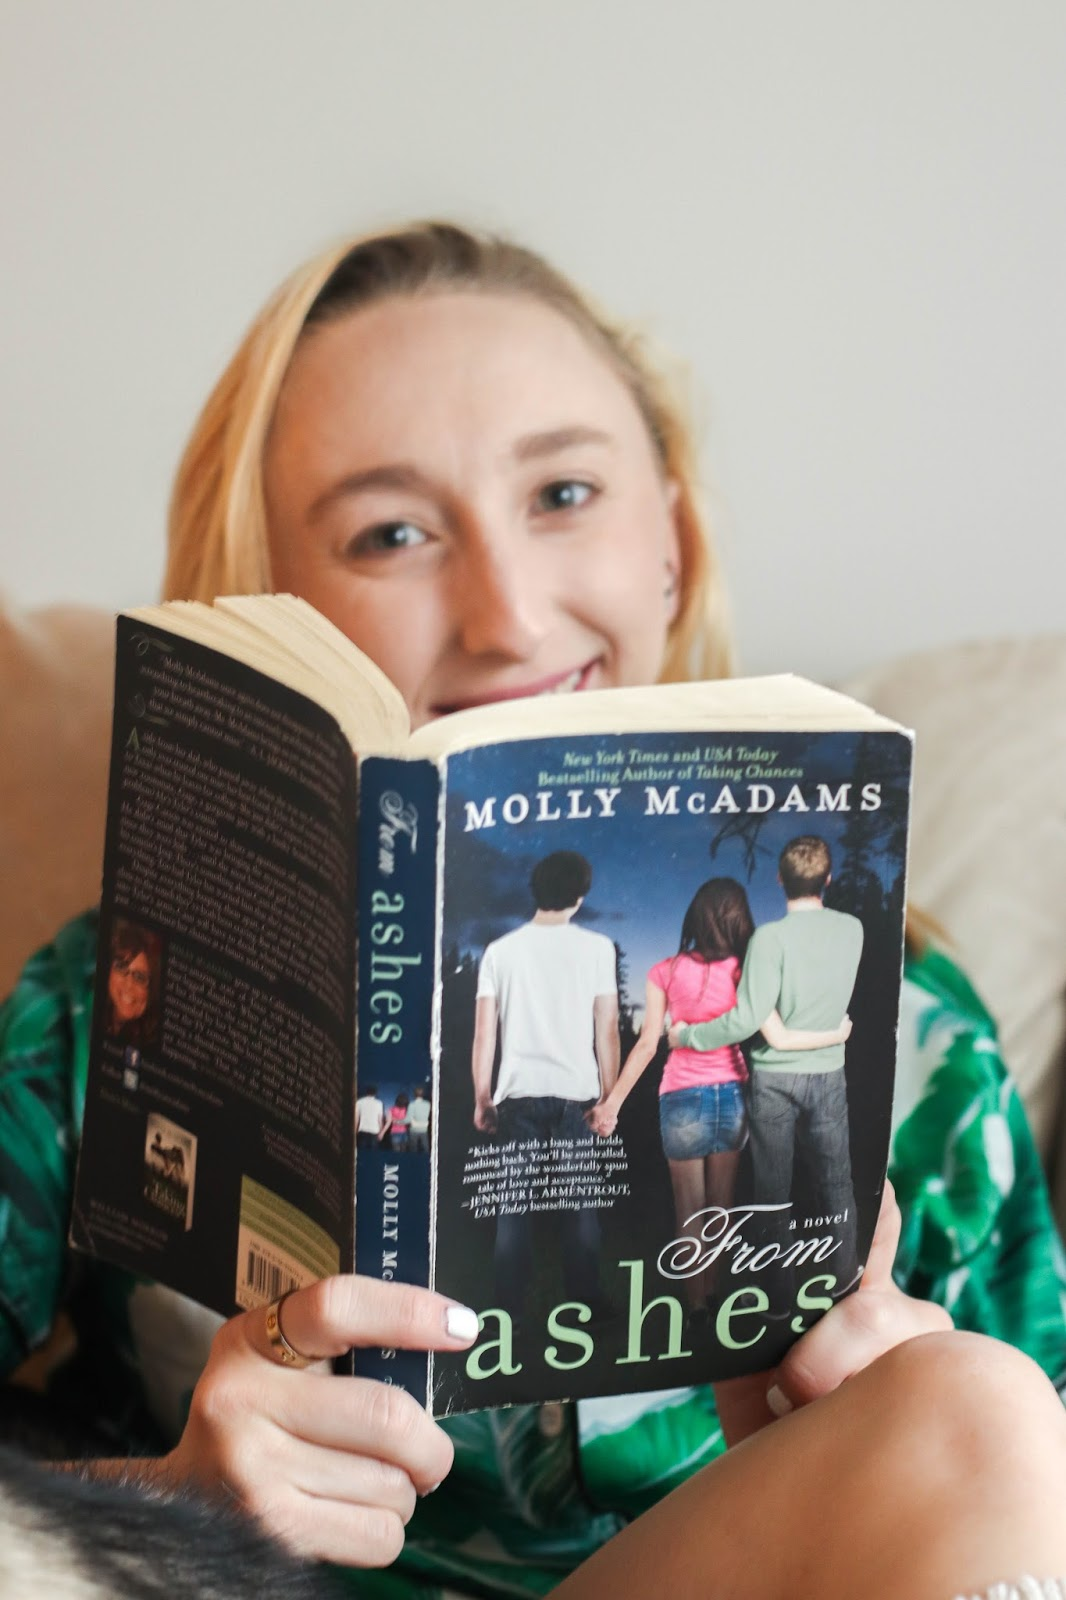 Currently Reading: 'From Ashes' by Molly McAdams